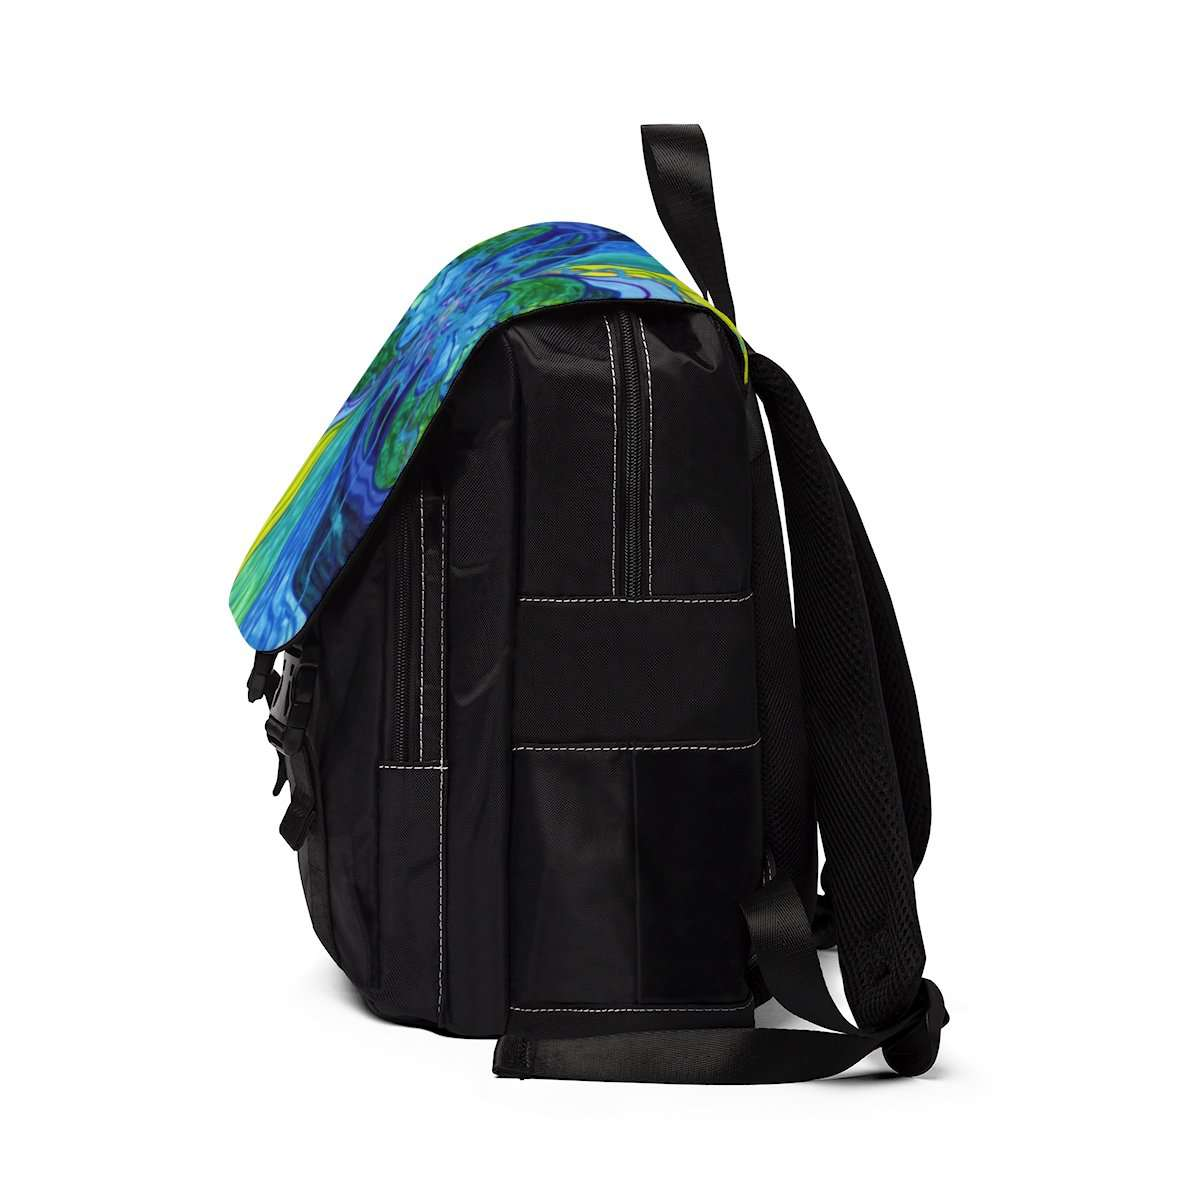 Tranquility - Unisex Casual Shoulder Backpack